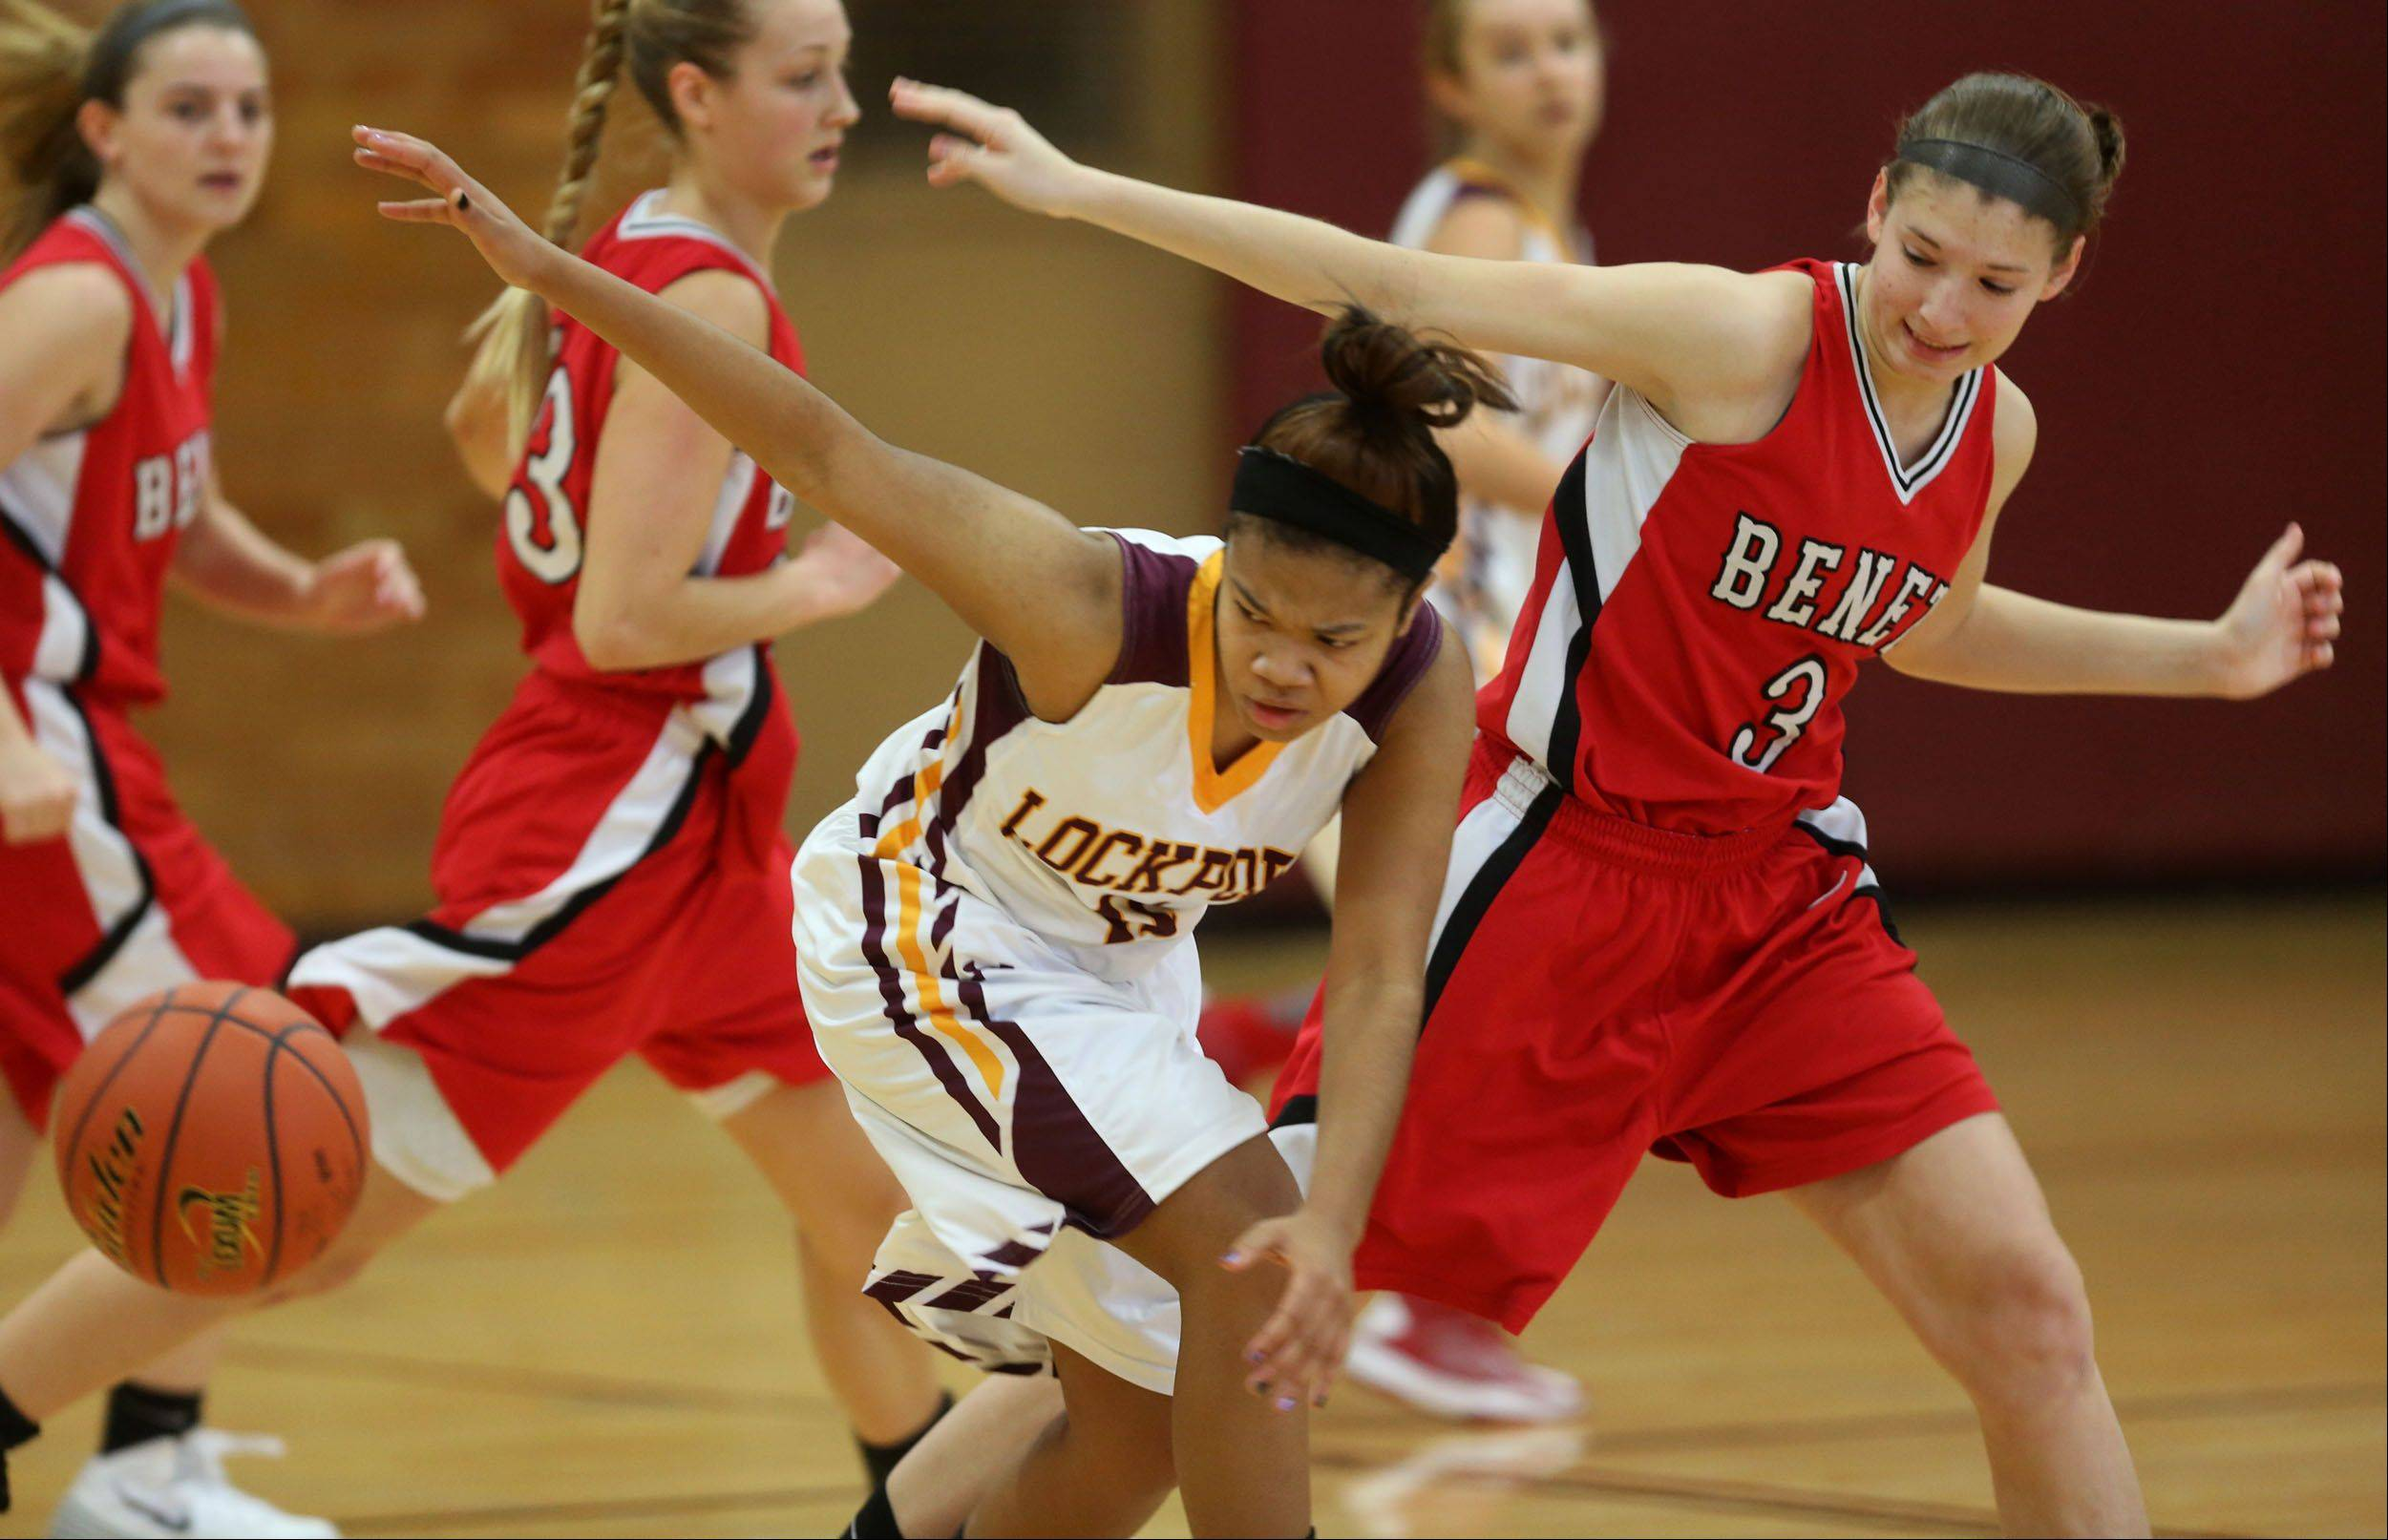 Benet�s Emma Hlavin, right, eyes the ball against Lockport during girls basketball action.